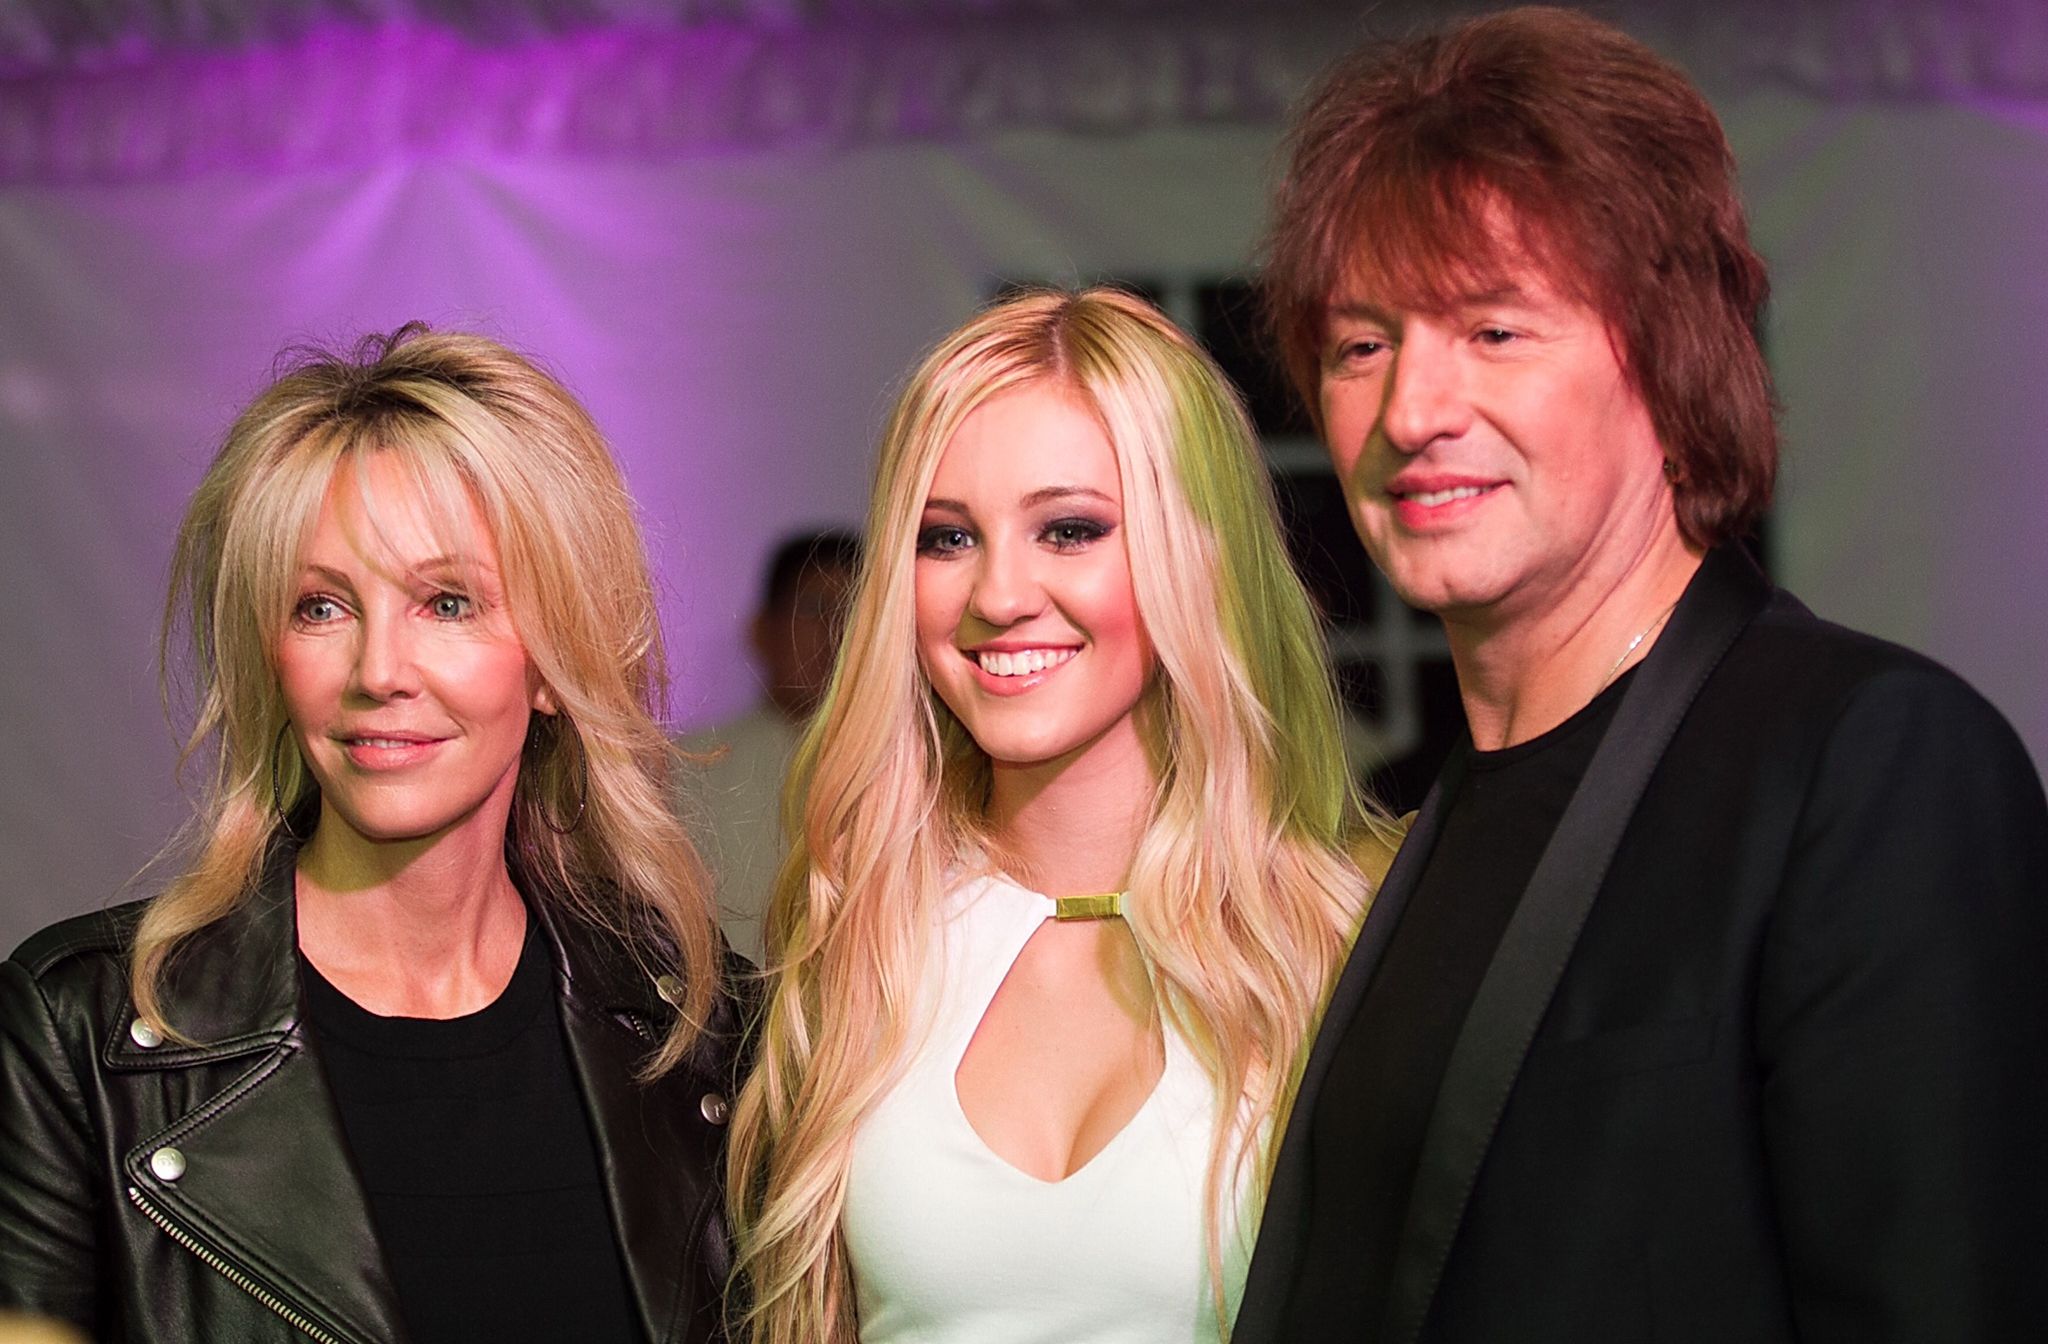 Exclusive - Heather Locklear & Richie Sambora Celebrate With Daughter Ava At Sweet 16